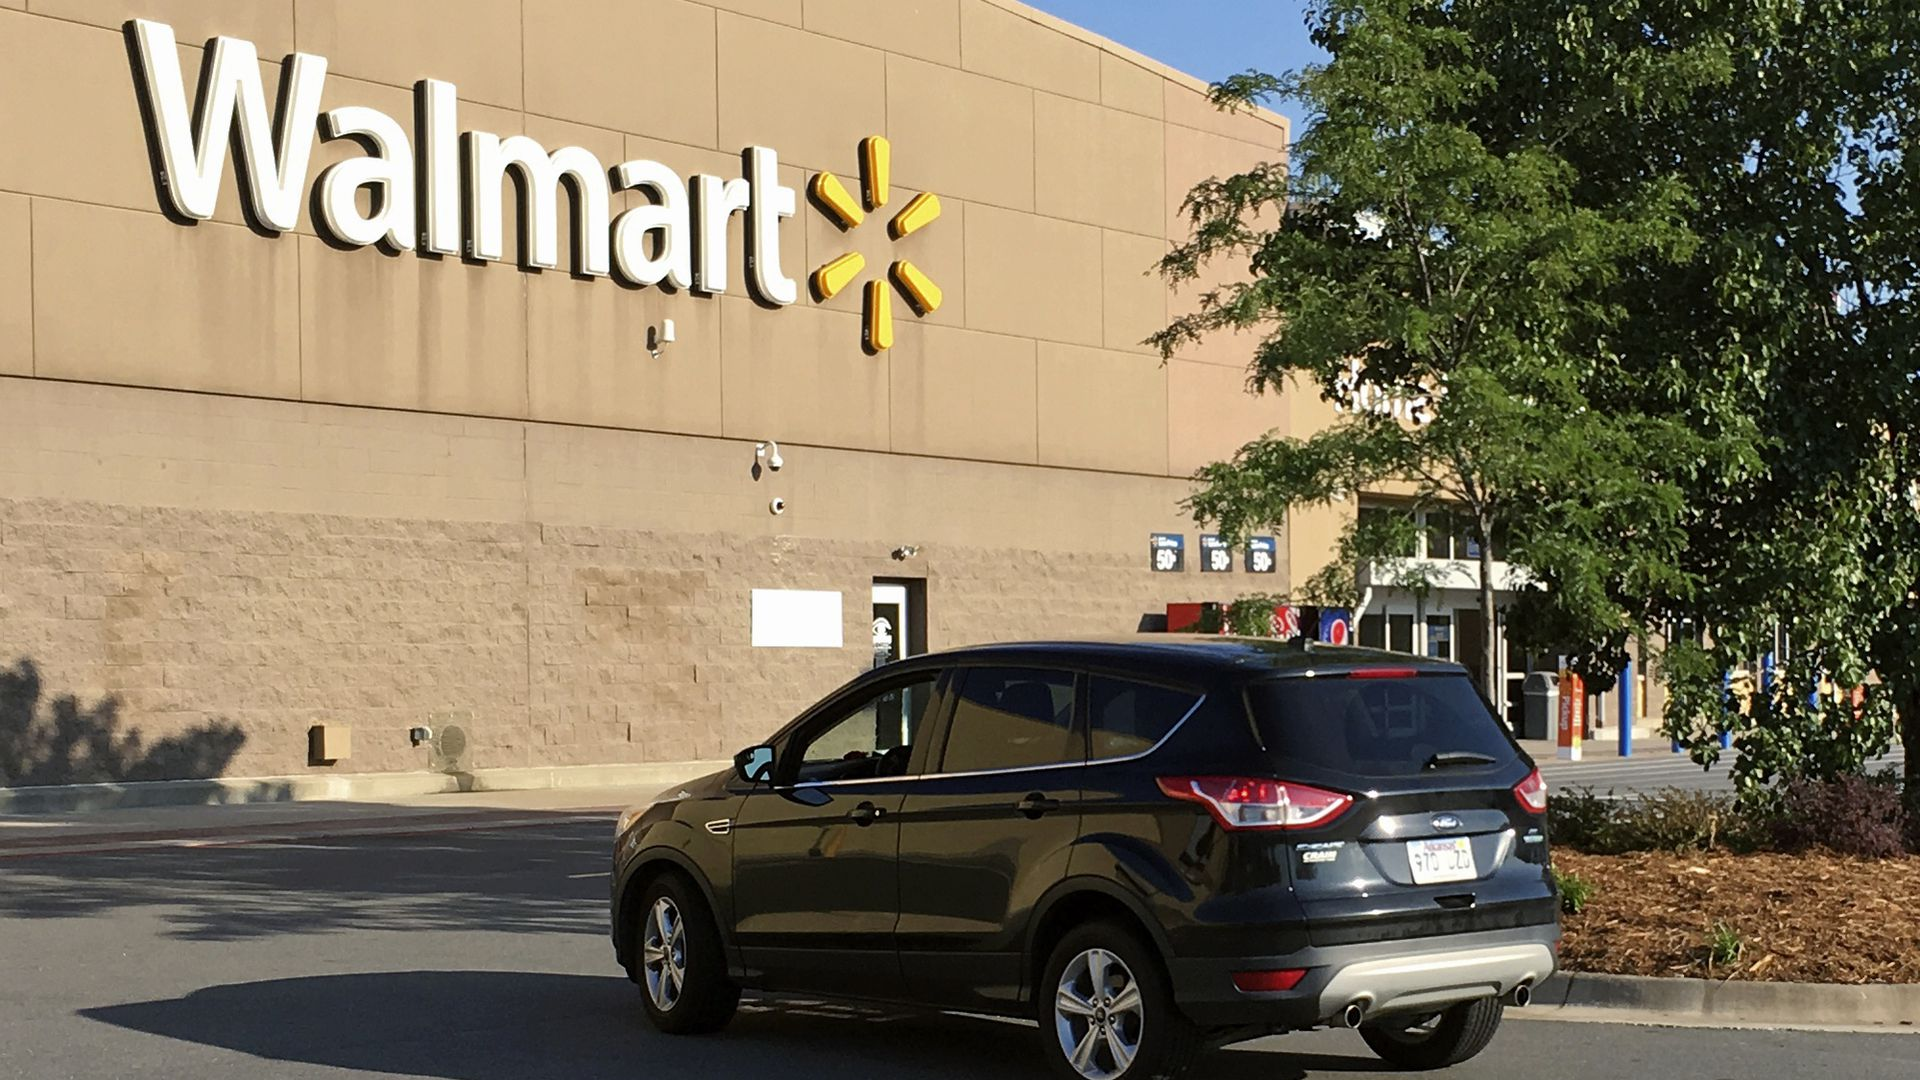 A motorist drives through a Walmart parking lot.